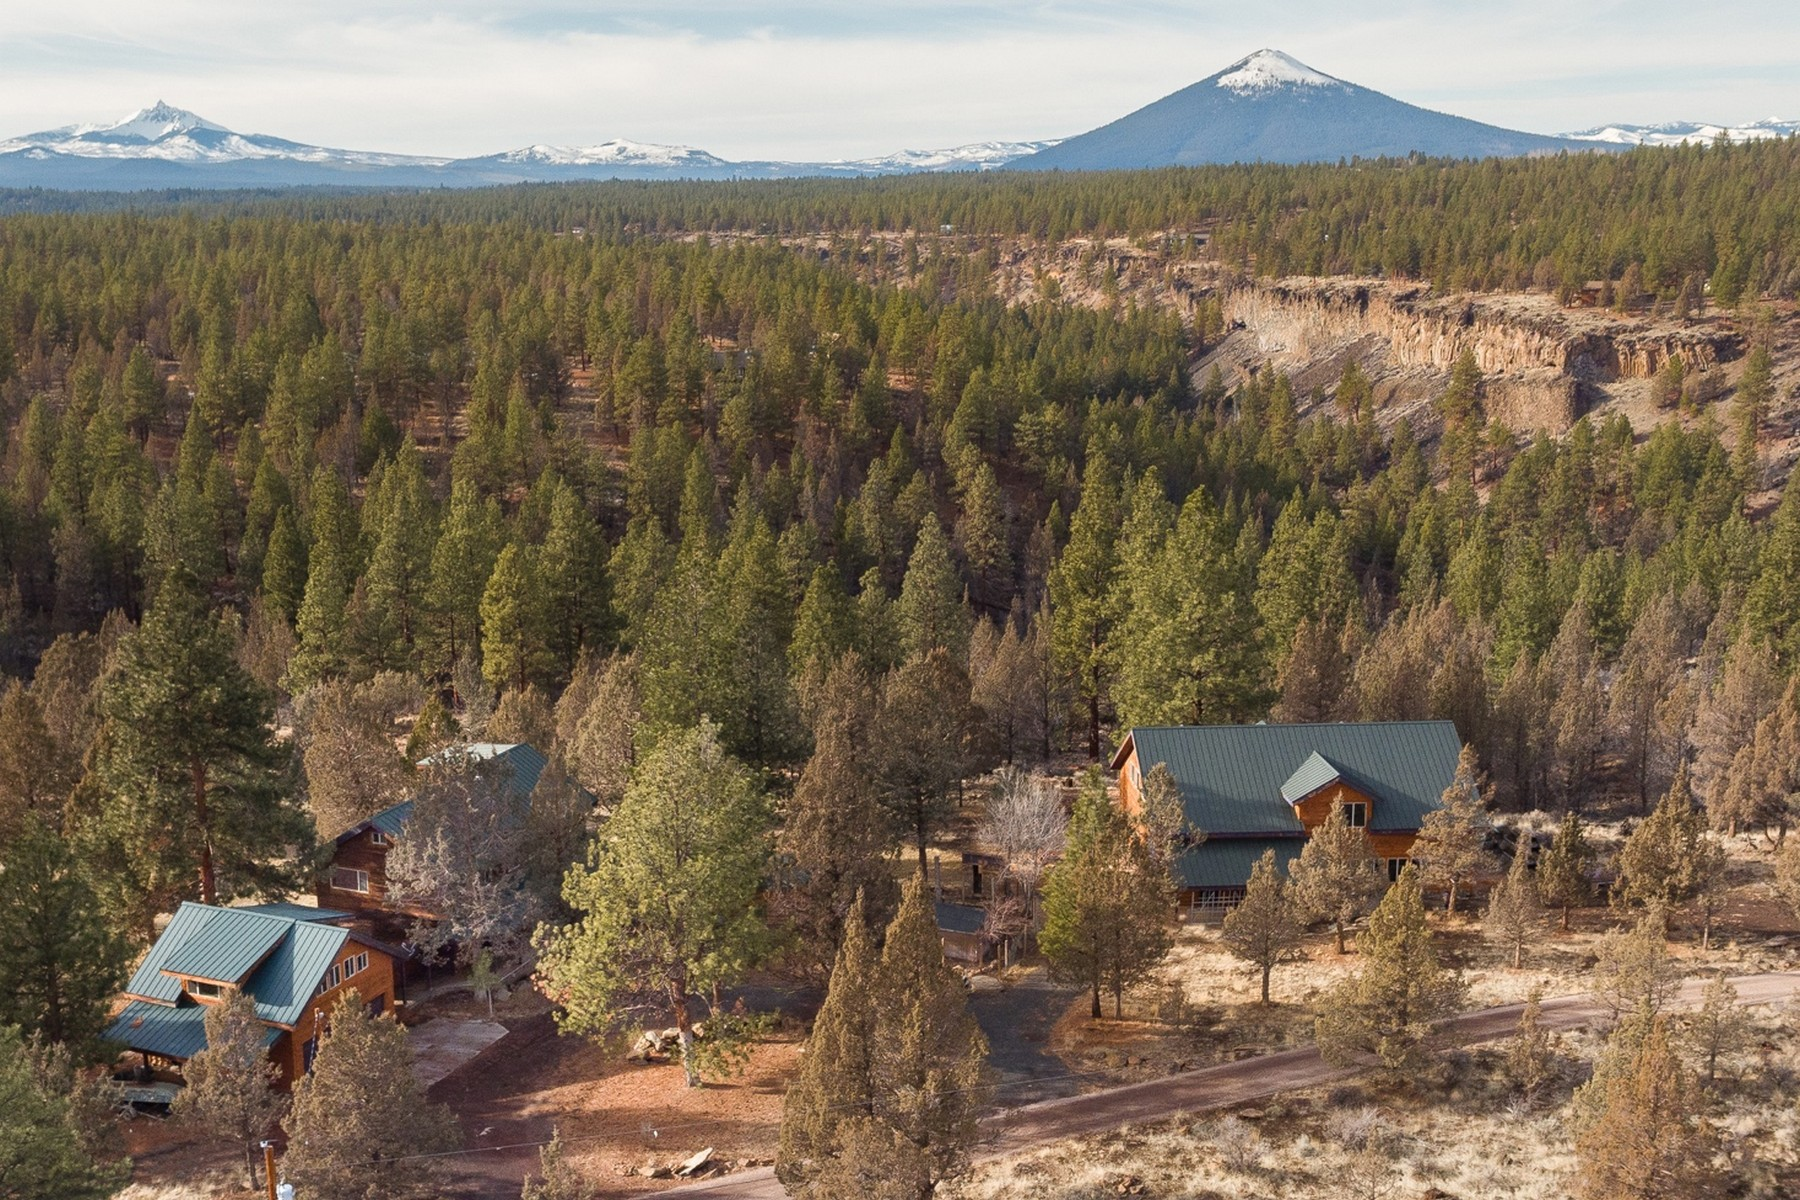 Single Family Homes for Active at Home and Shop on Acreage in Sisters 69705 Lake Dr Sisters, Oregon 97759 United States